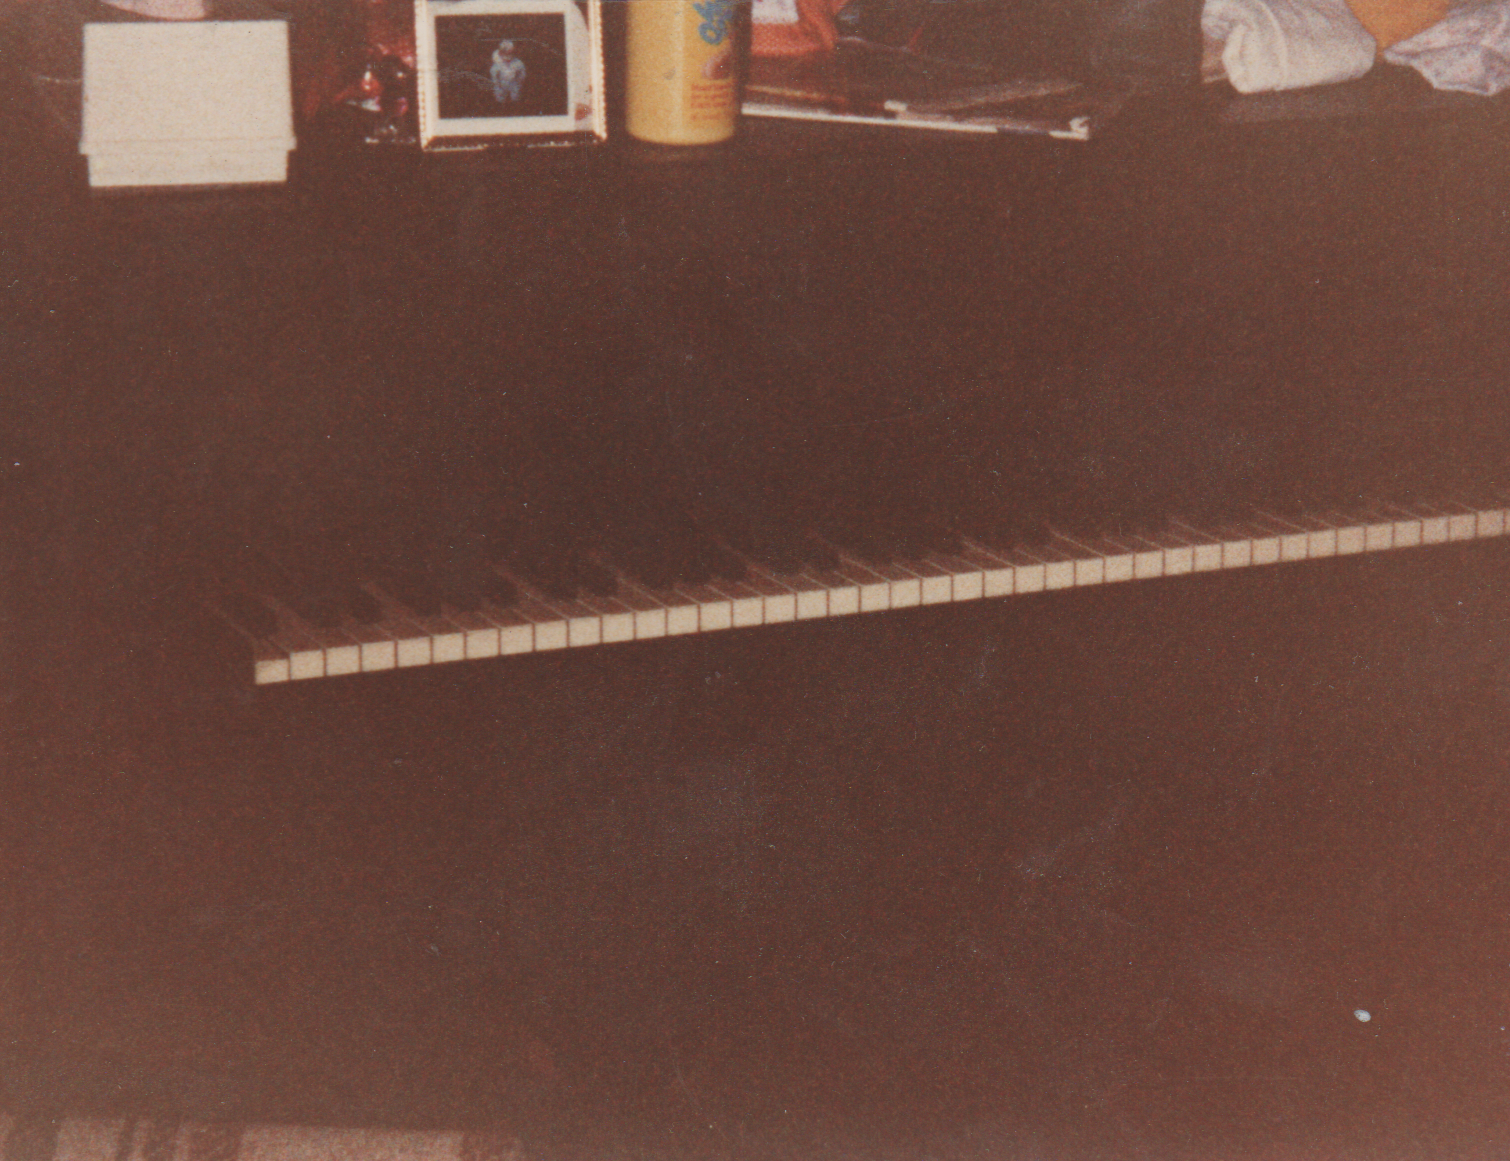 1991-12-25 - Christmas of 1991 - Joey, Crystal, Katie, Presents, Piano, Toys, 3pics-3.png